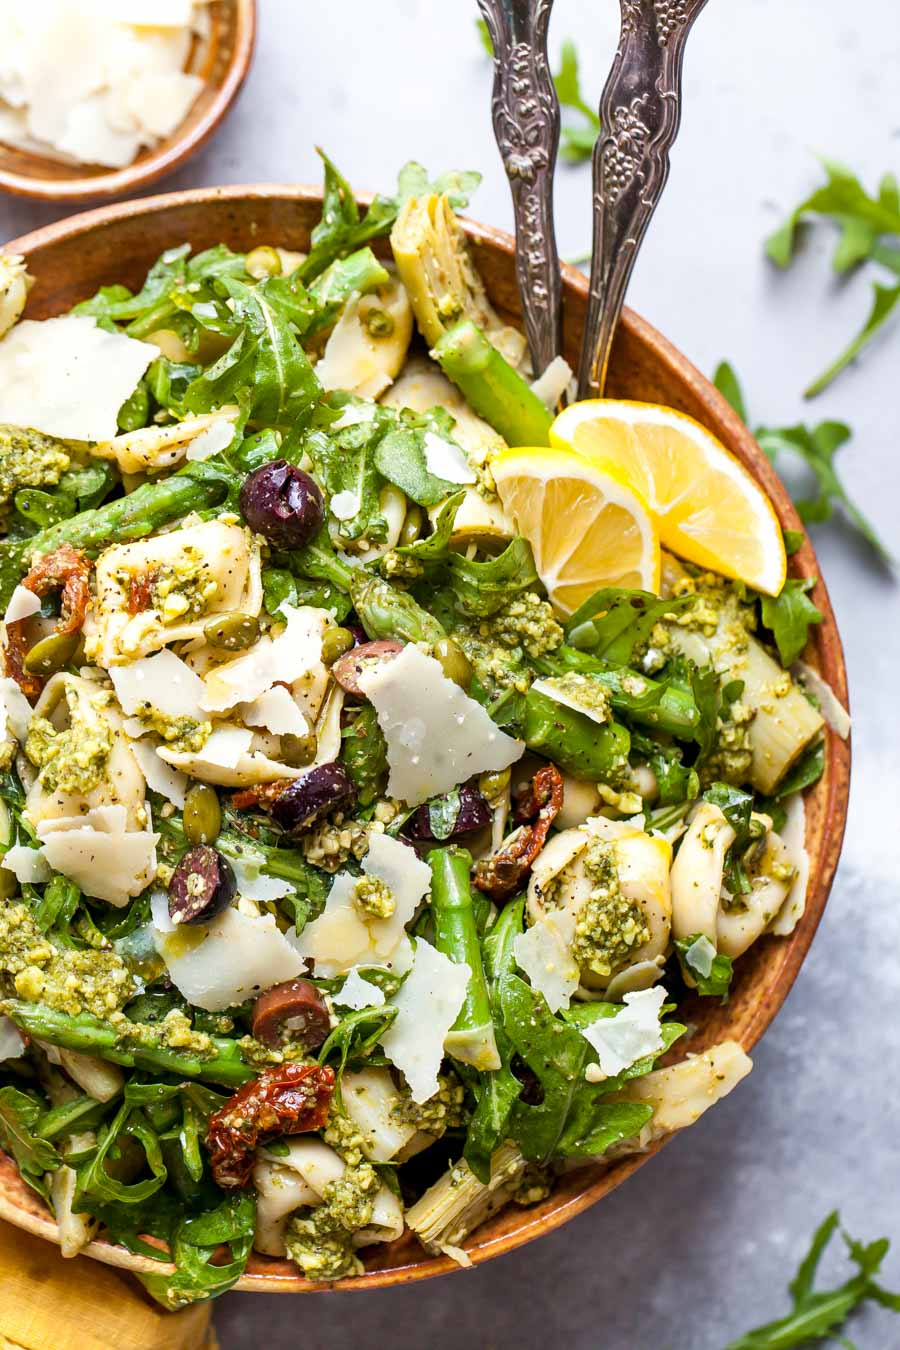 Mediterranean Tortellini Salad with Sun-Dried Tomatoes, Artichokes, and Pesto Sauce (30 Minutes)